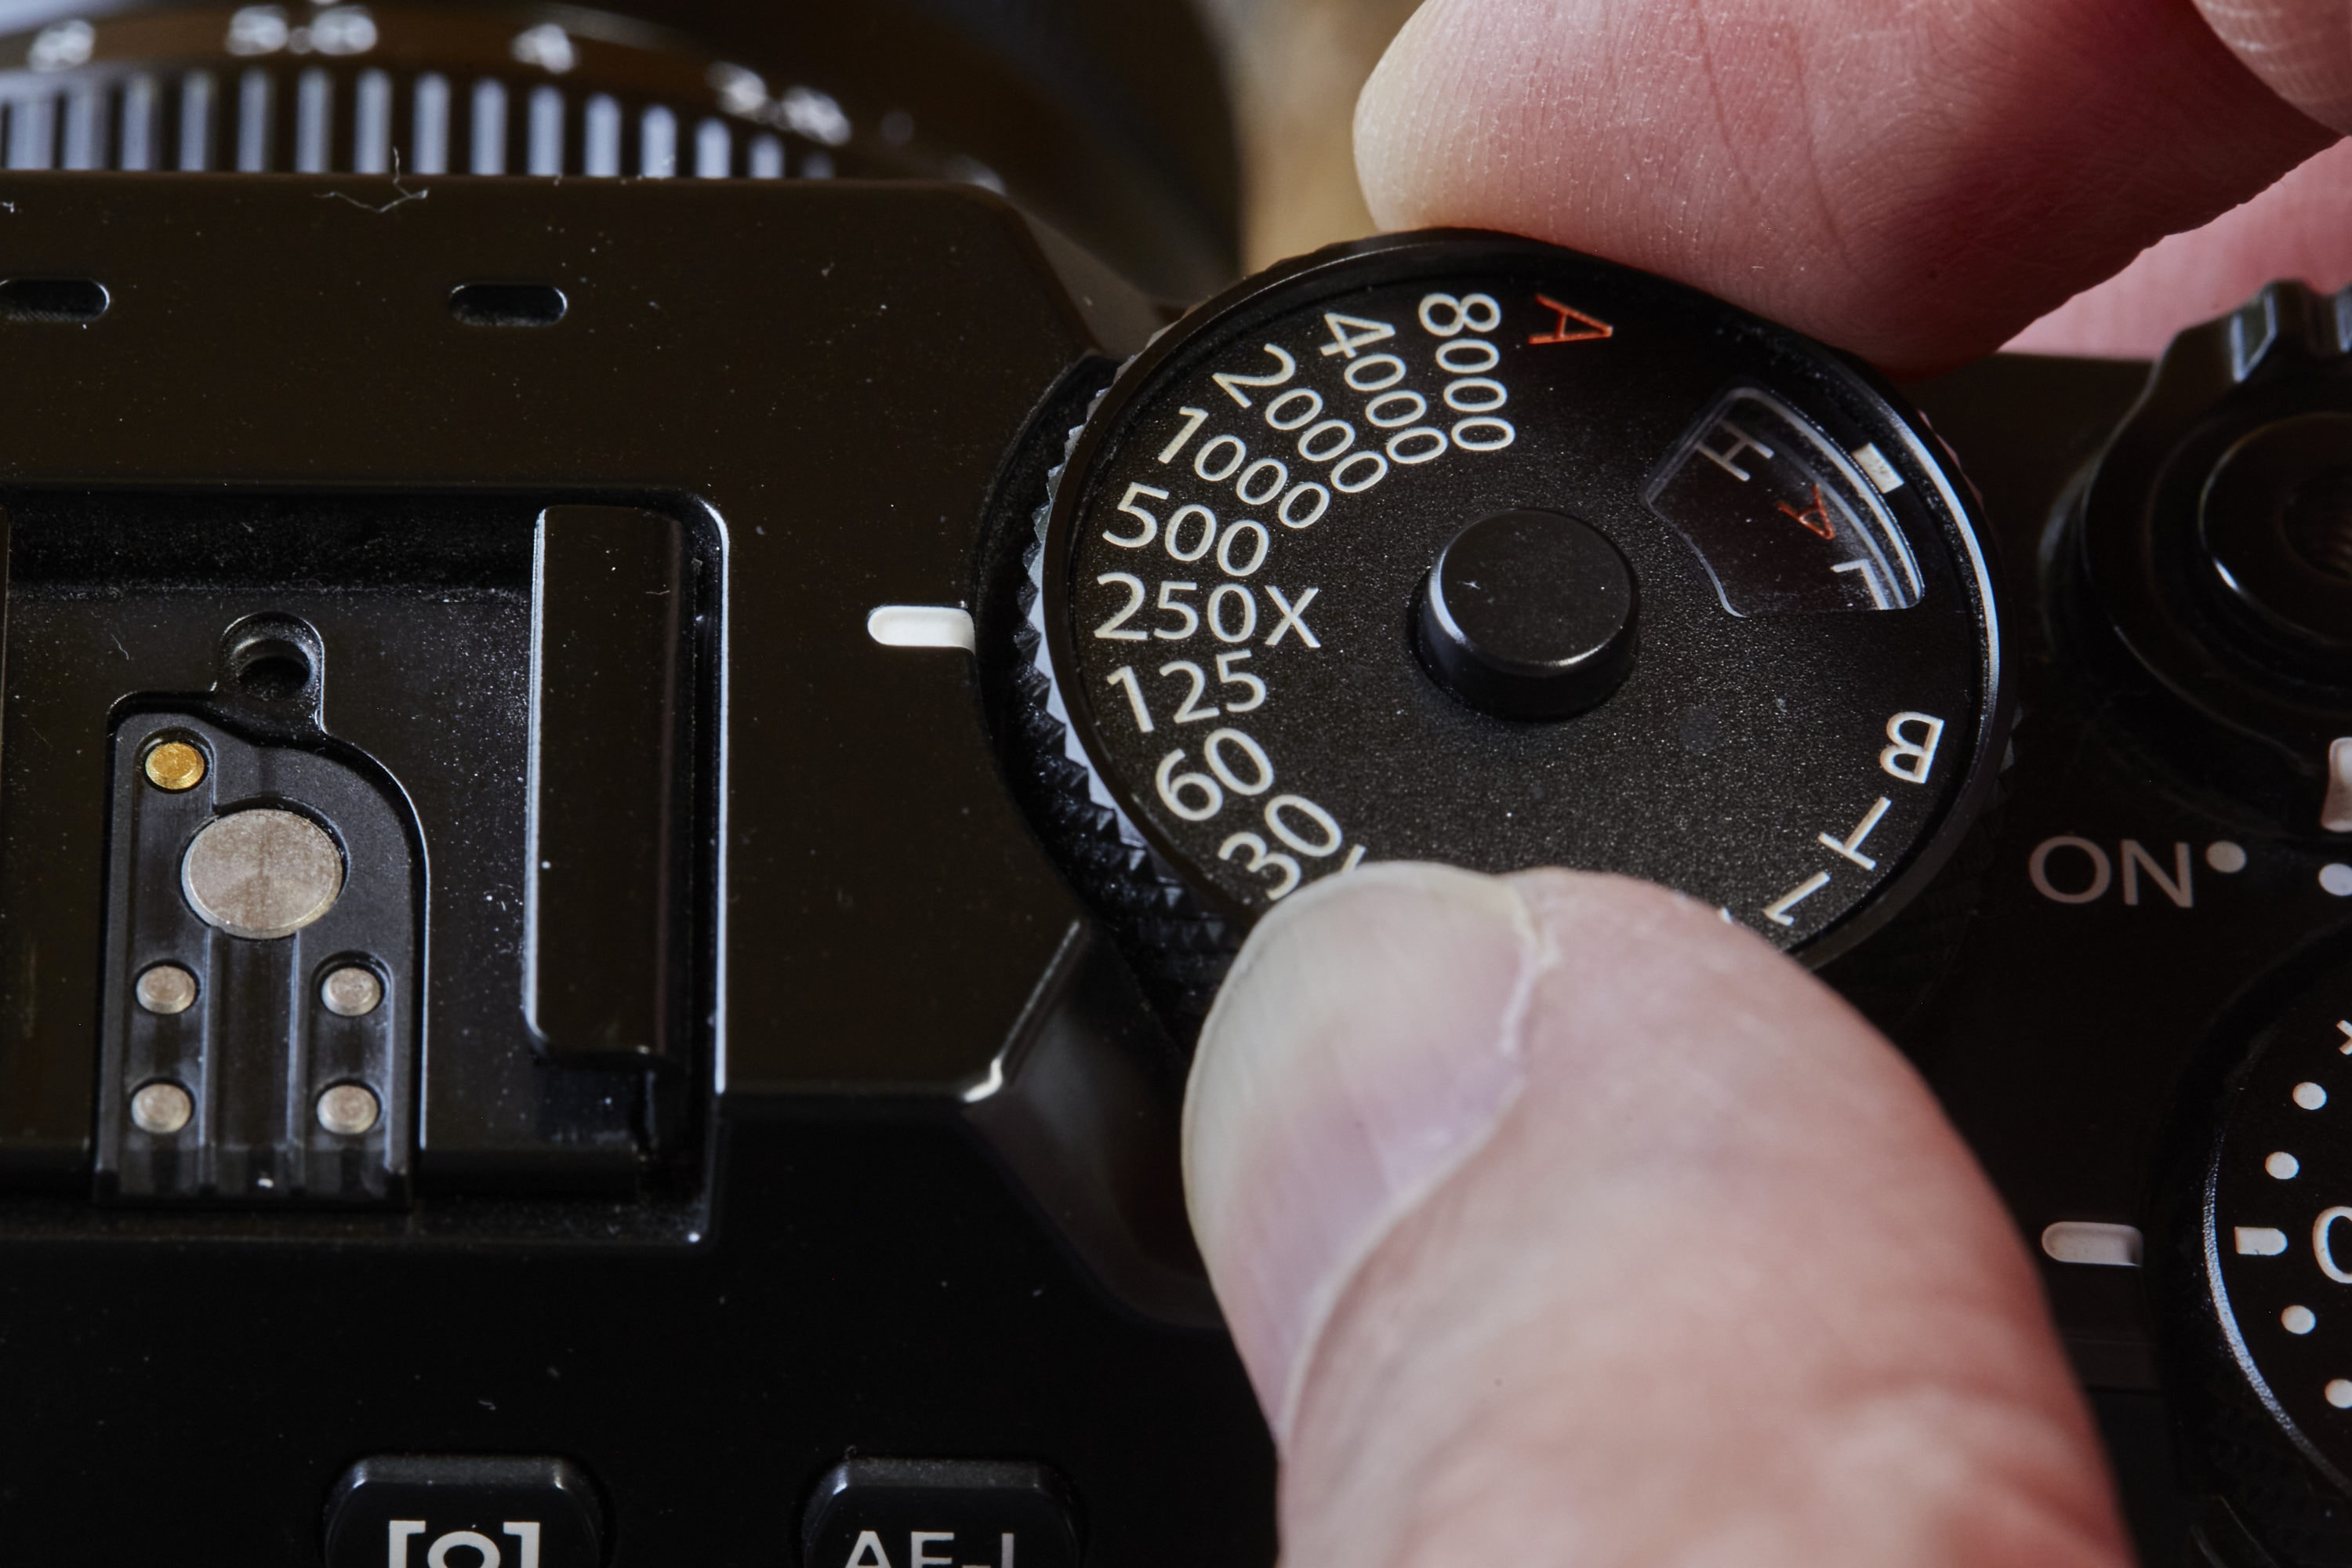 Turning ISO dial on Fuji X-Pro2 camera